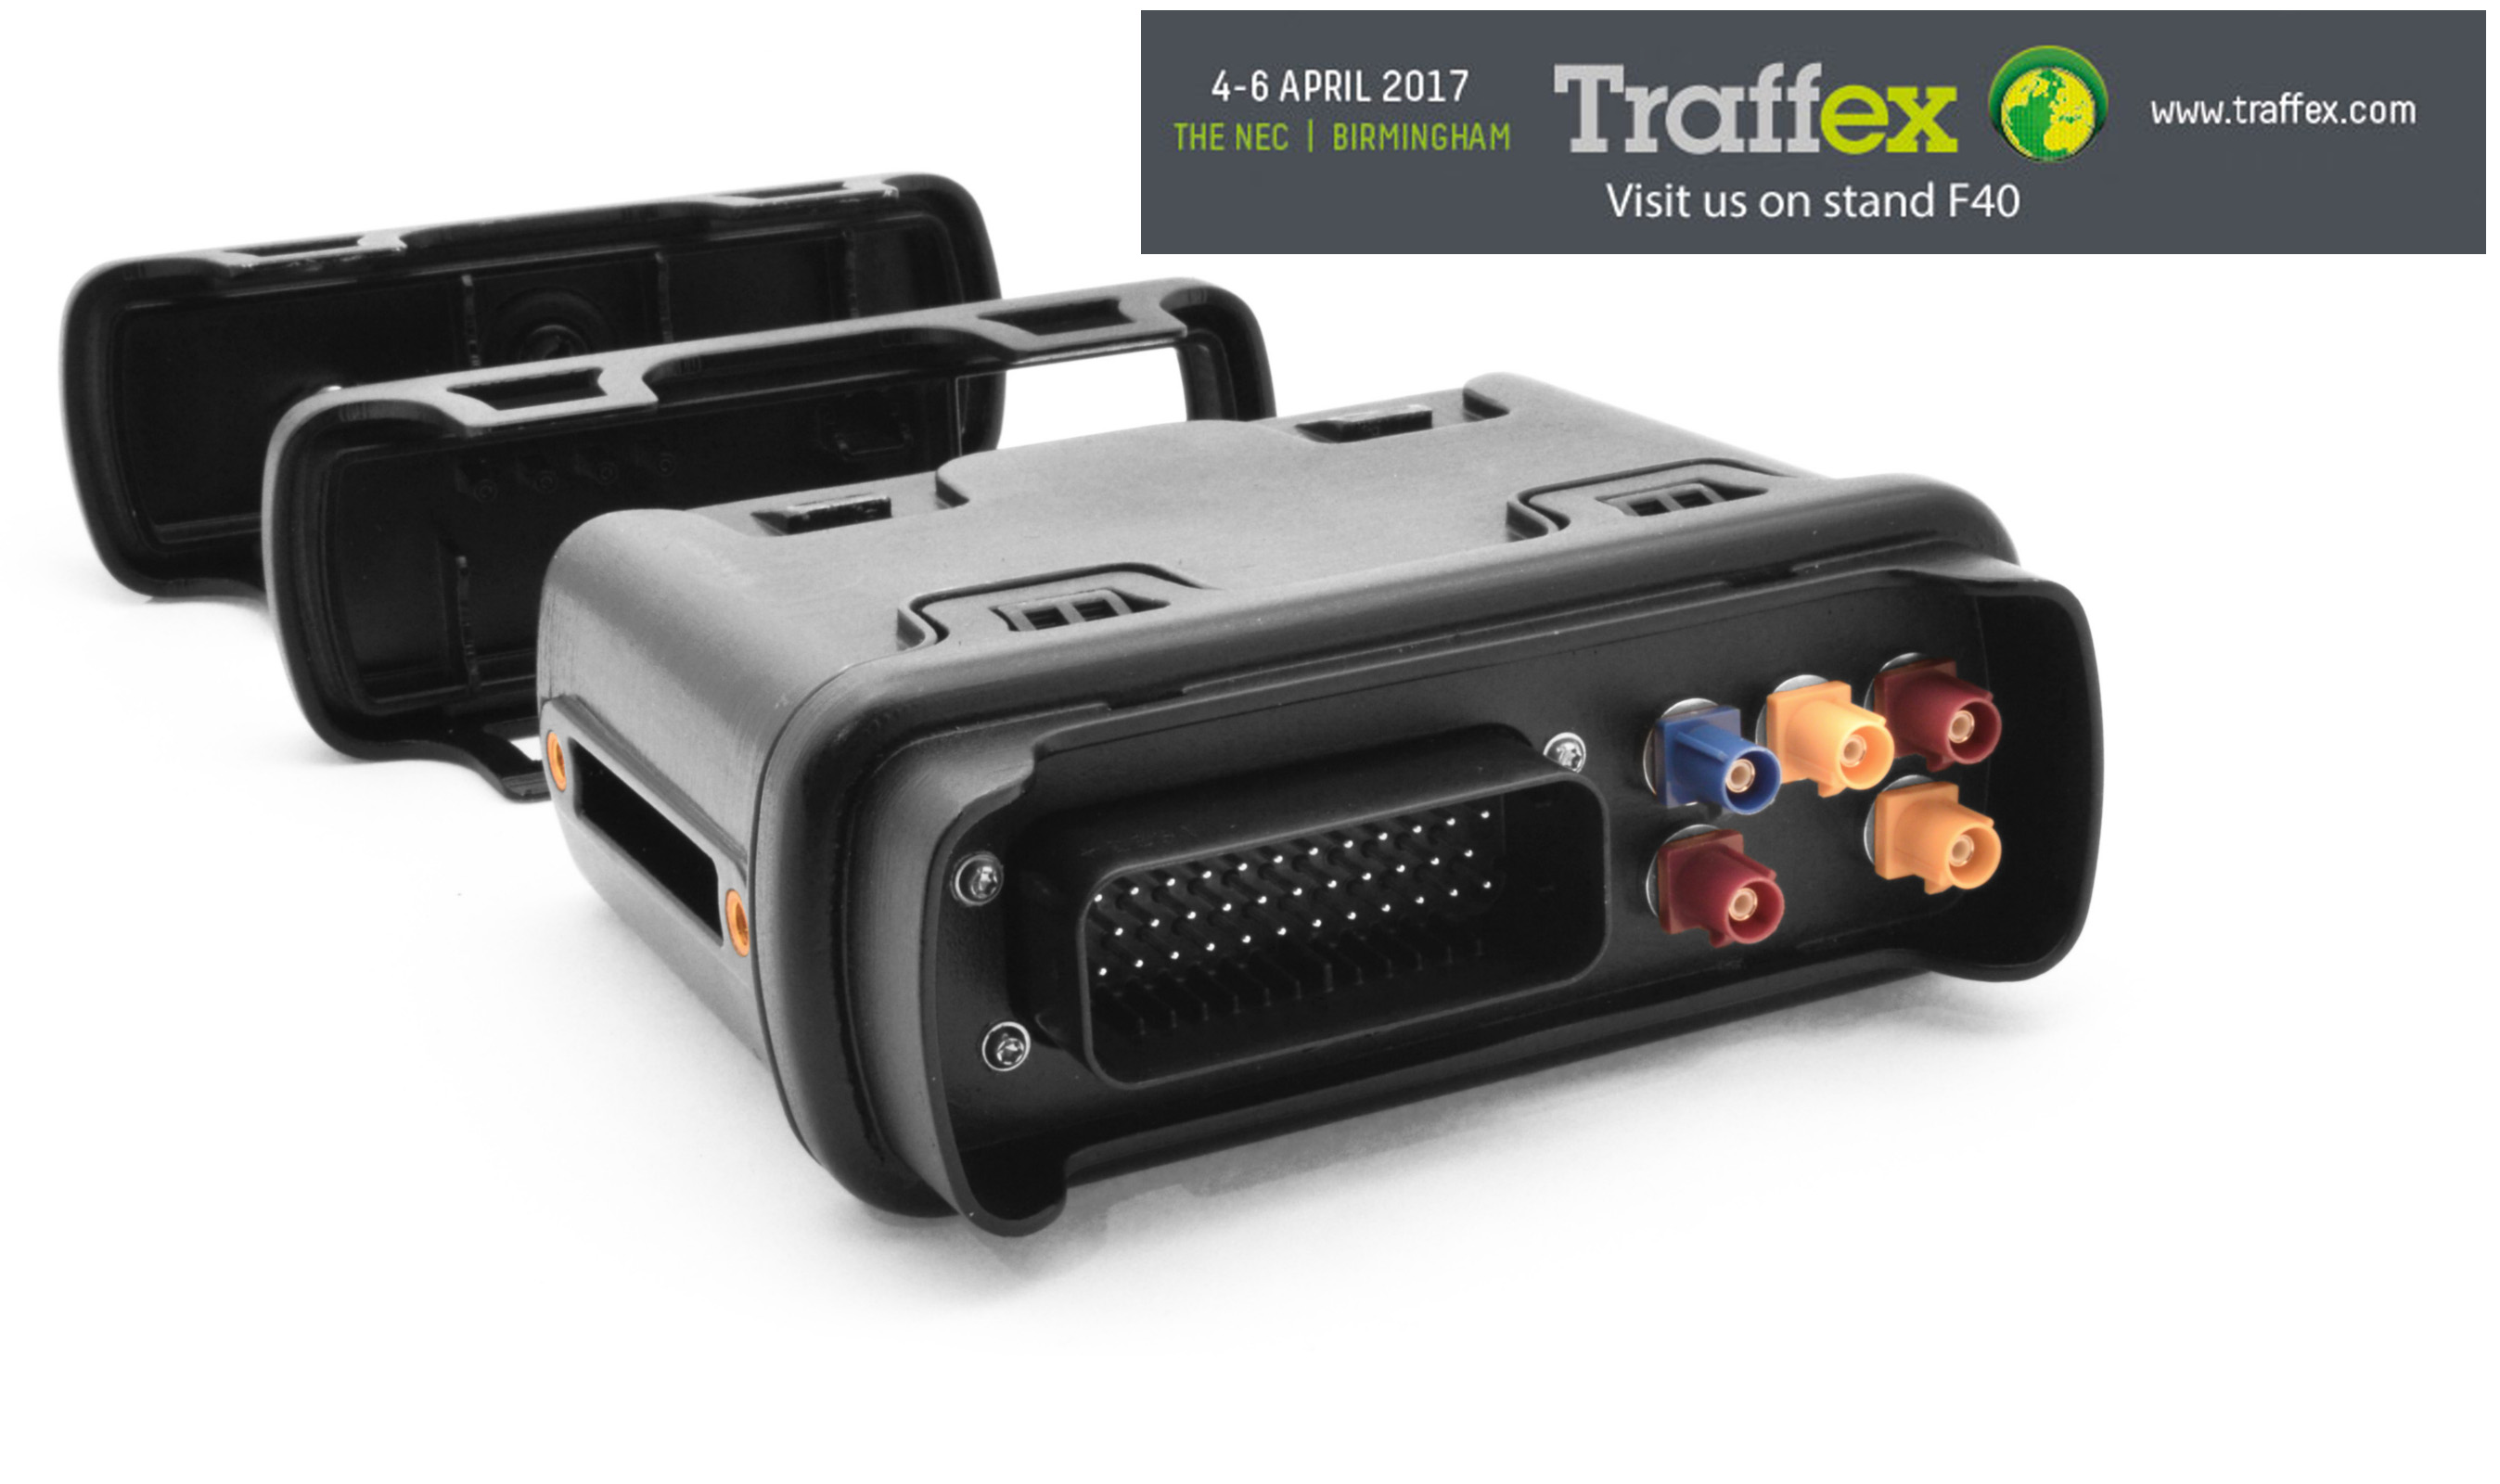 After the successful launch of owa4X at the Embedded World, we are glad to announce that we will be present at Traffex